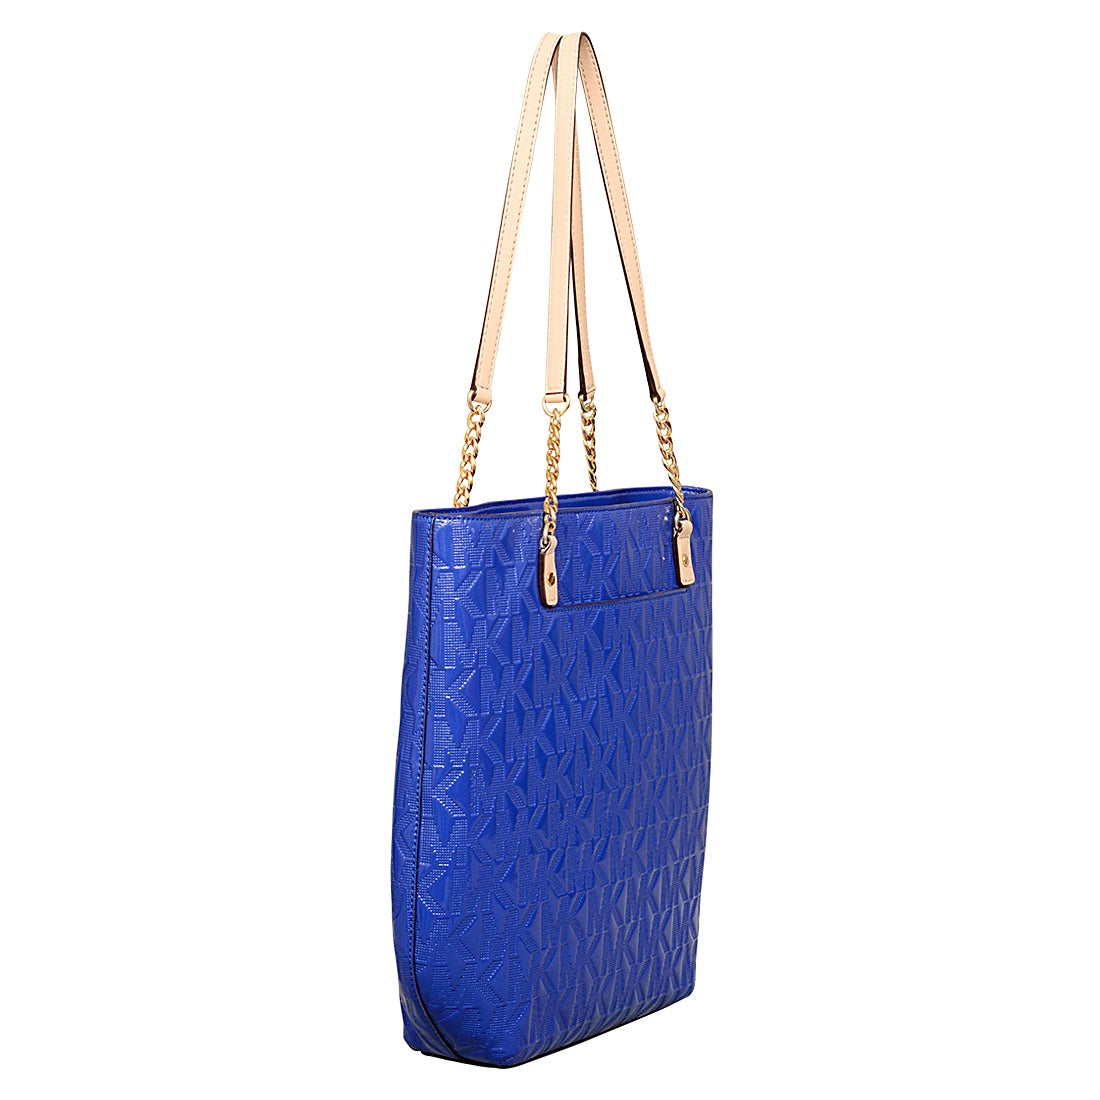 c6bbf396f2f99f Shop Michael Kors Signature Leather Jet Set NS Chain Tote Bag - Free  Shipping Today - Overstock - 12554633